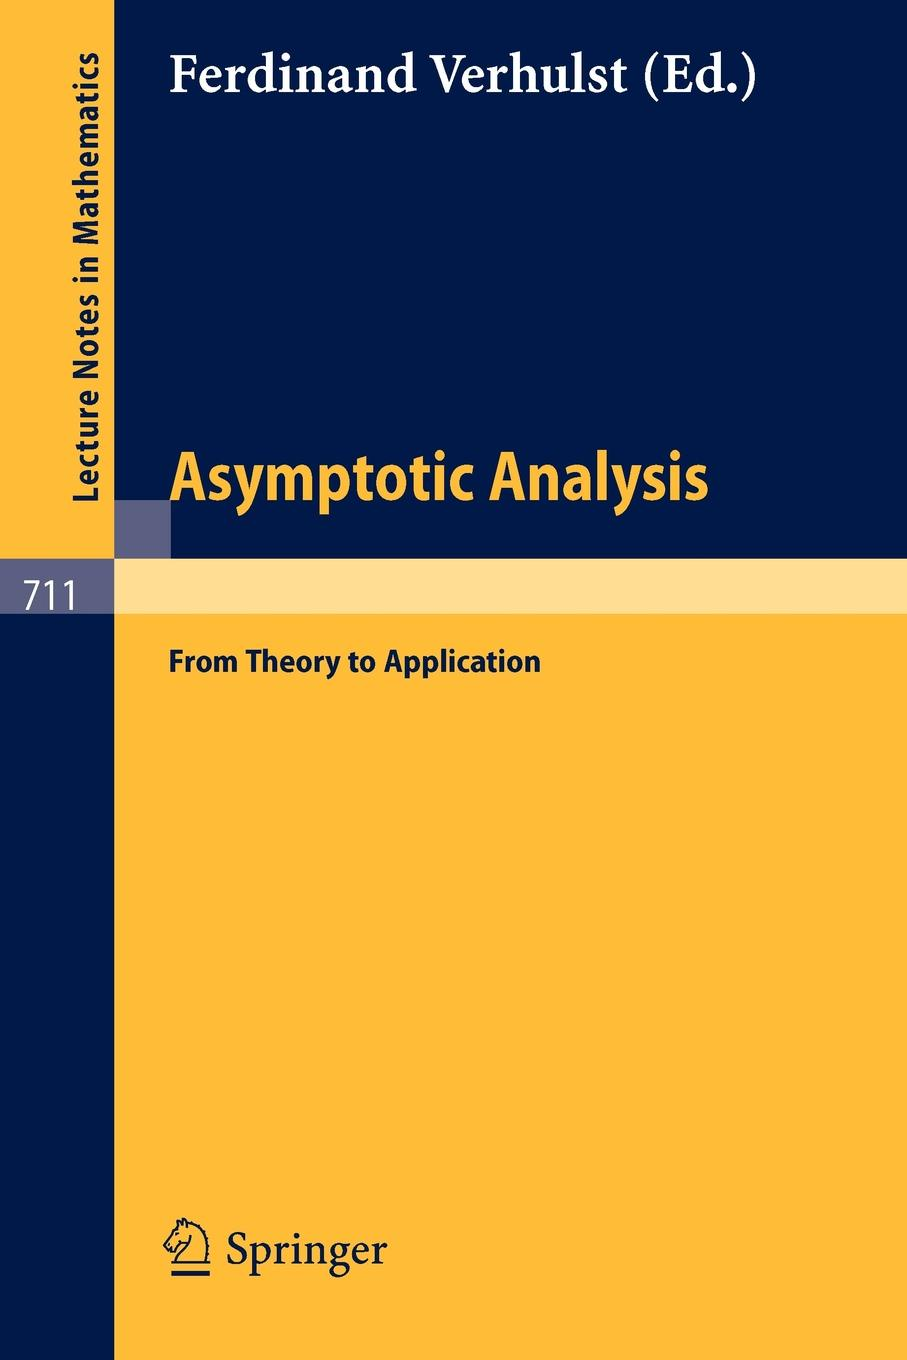 лучшая цена Asymptotic Analysis. From Theory to Application